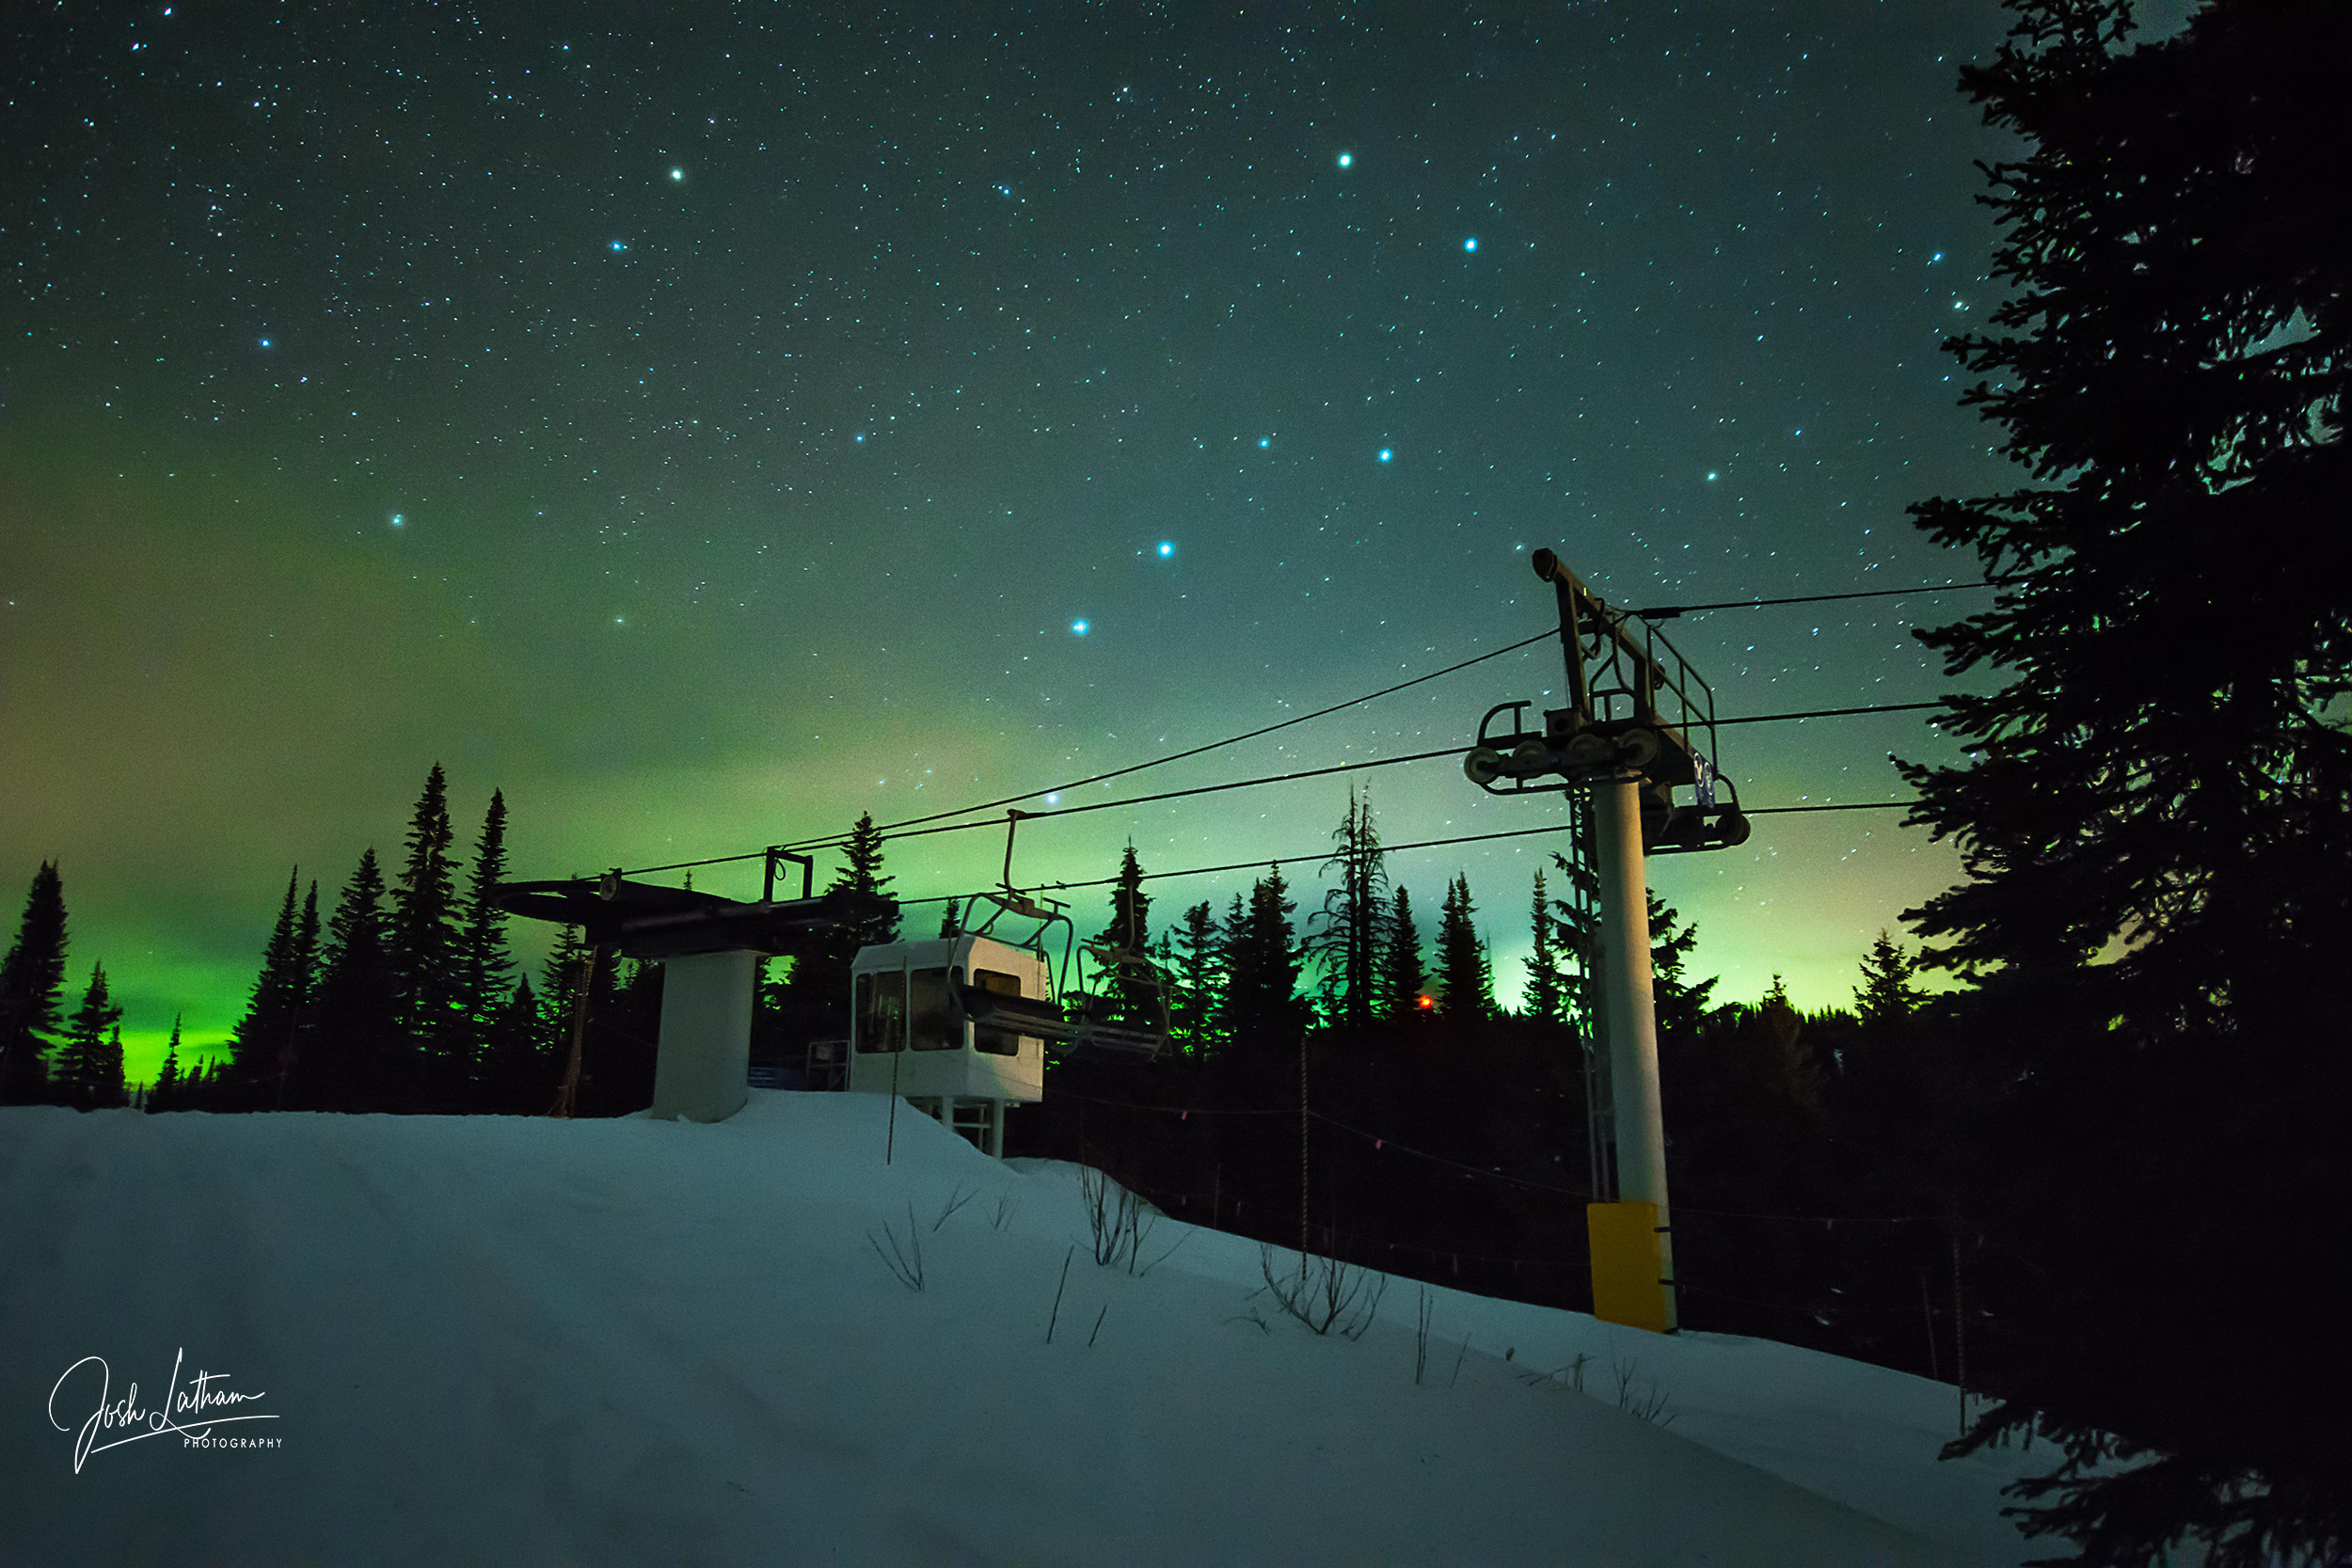 Silver Star Mountain during the Geminids meteor shower with some beautiful northern lights